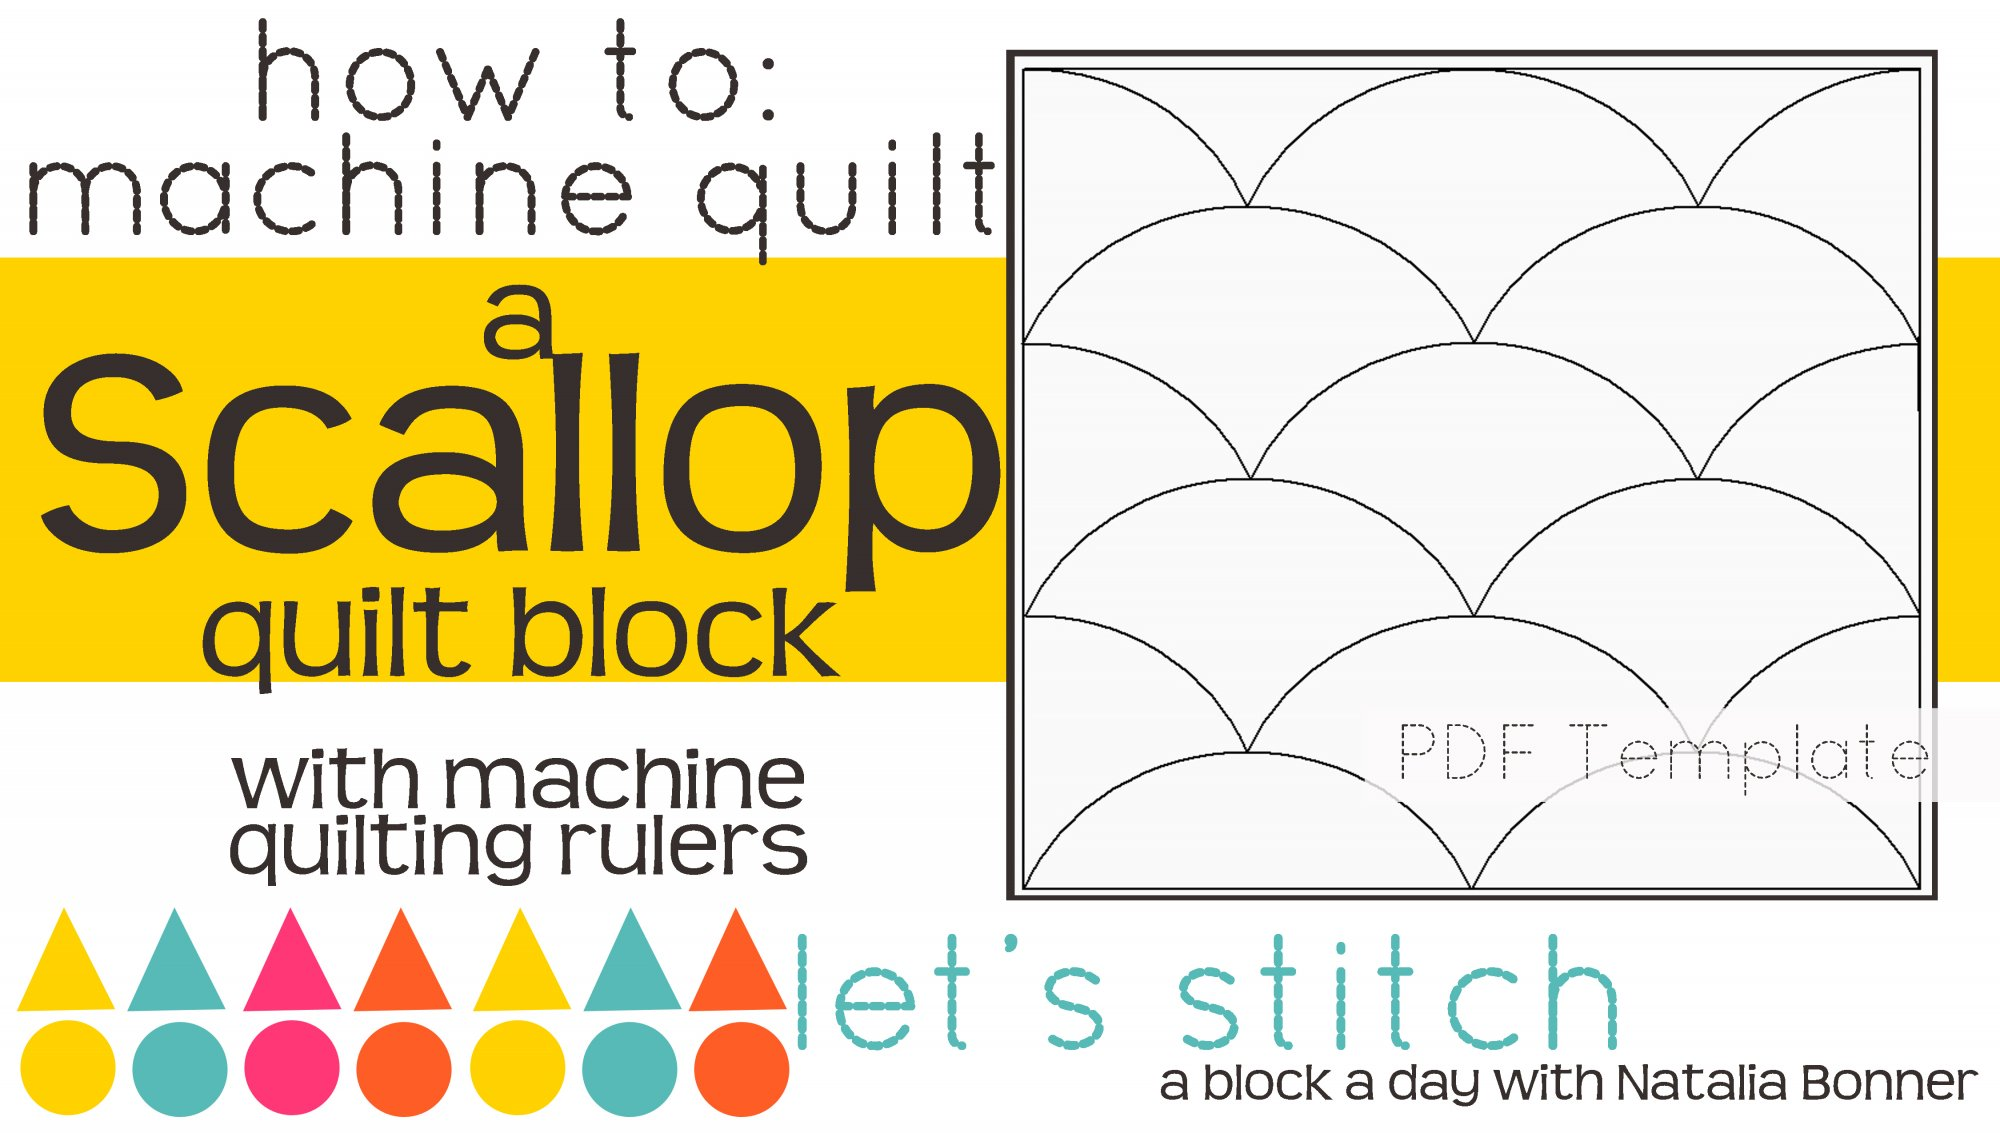 Let's Stitch - A Block a Day With Natalia Bonner - PDF - Scallop